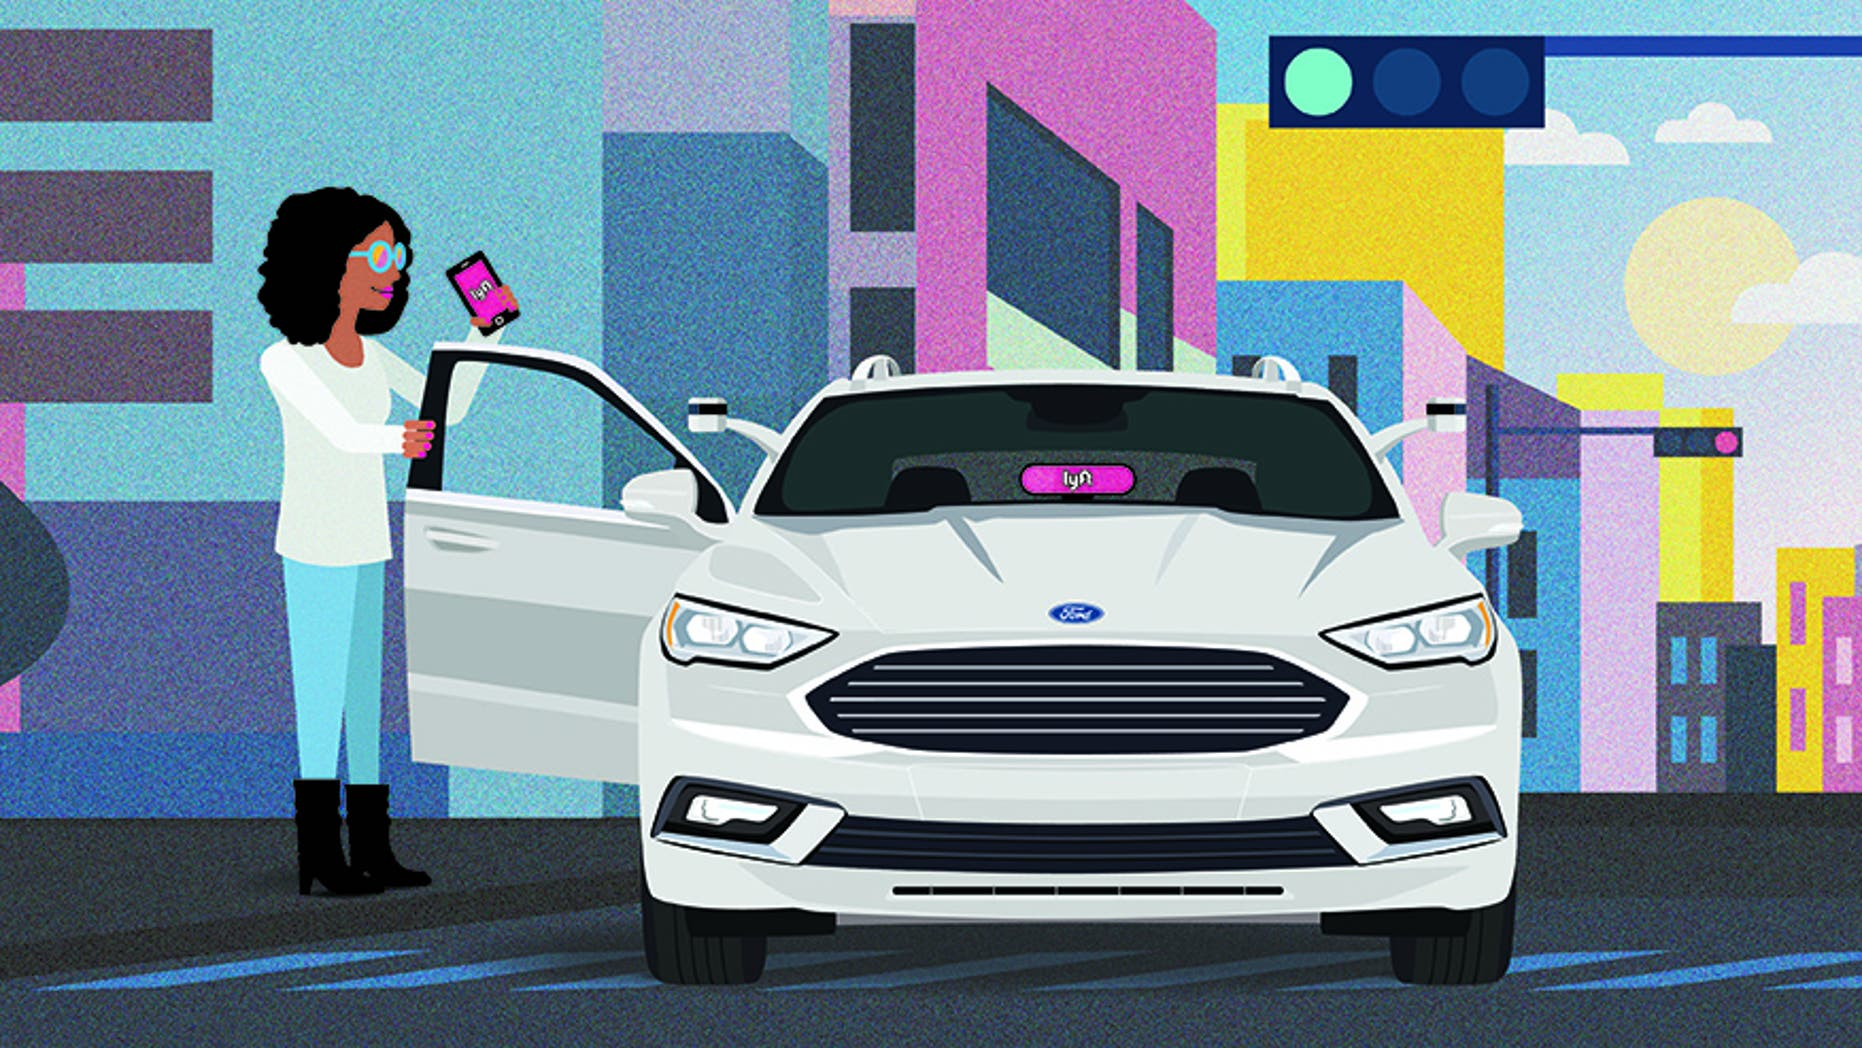 Ford is announcing a significant step toward bringing self-driving vehicles to the masses thanks to a new partnership with Lyft that will help both companies progress toward a more affordable, dependable and accessible transportation future.